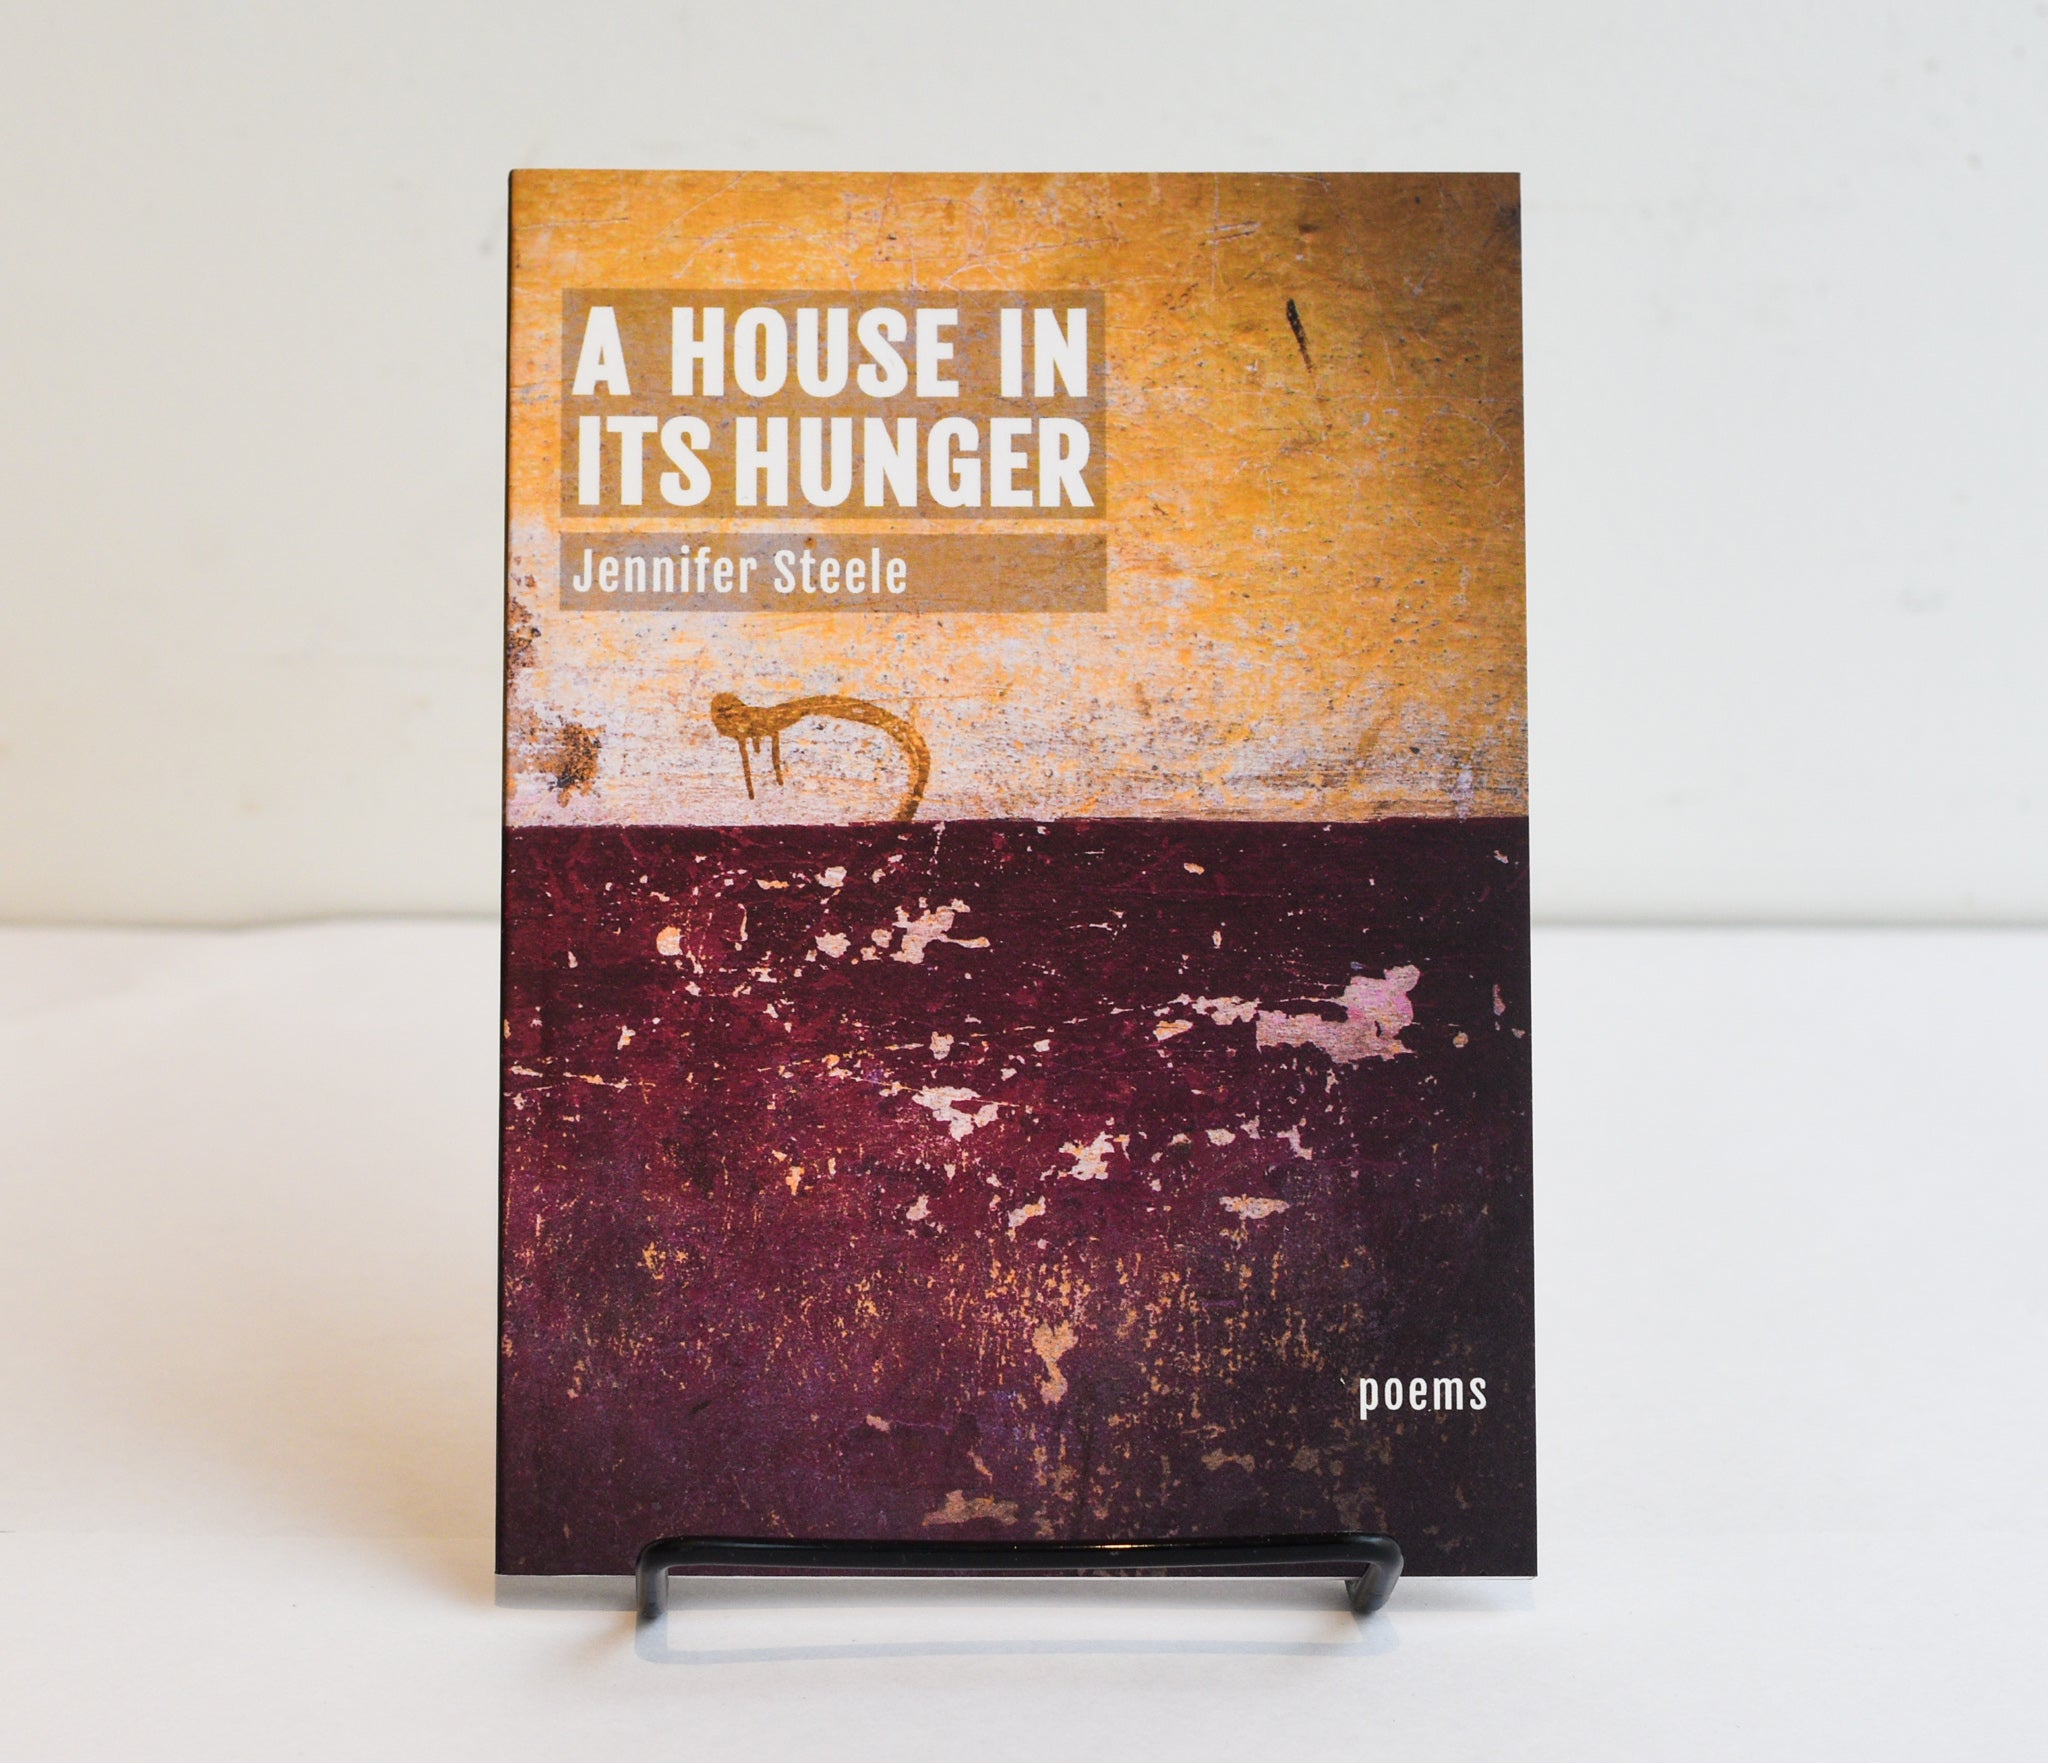 A House In Its Hunger by Jennifer Steele